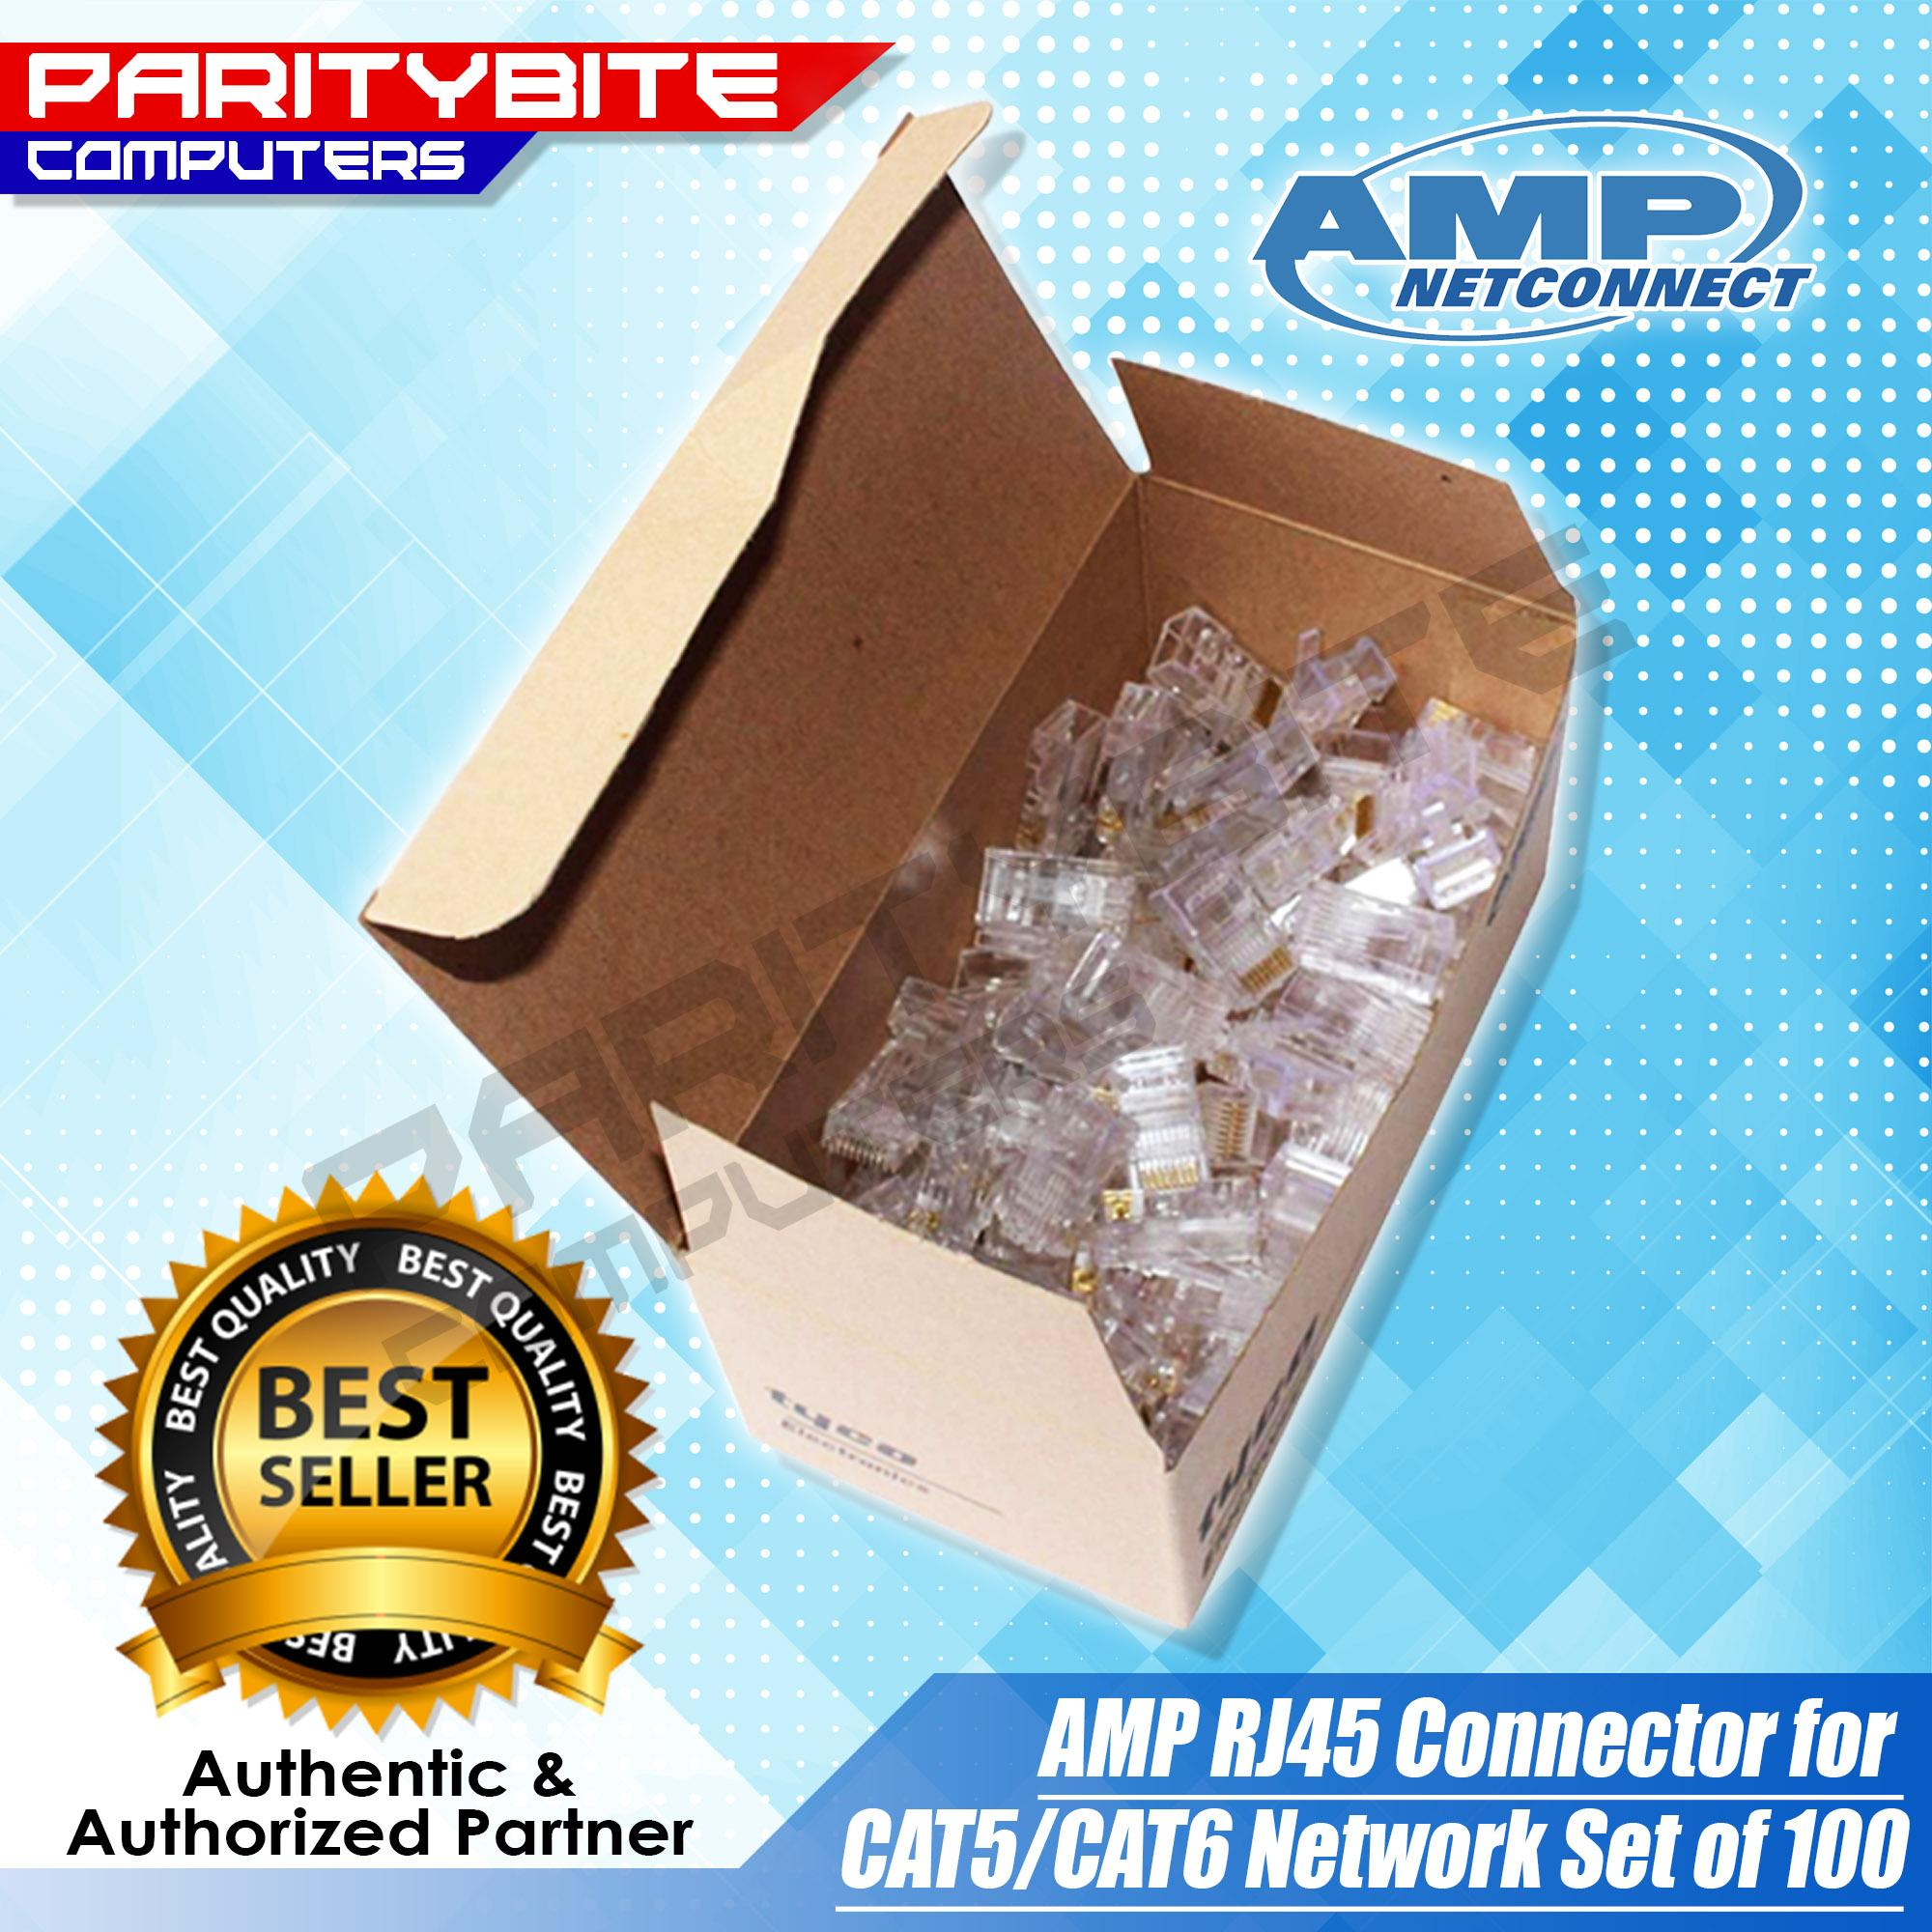 Pc Cables For Sale Adapters Prices Brands Specs In Tips And Links On Making Good Rj45 Or Cat5 Cat6 Amp Connector Network Set Of 100